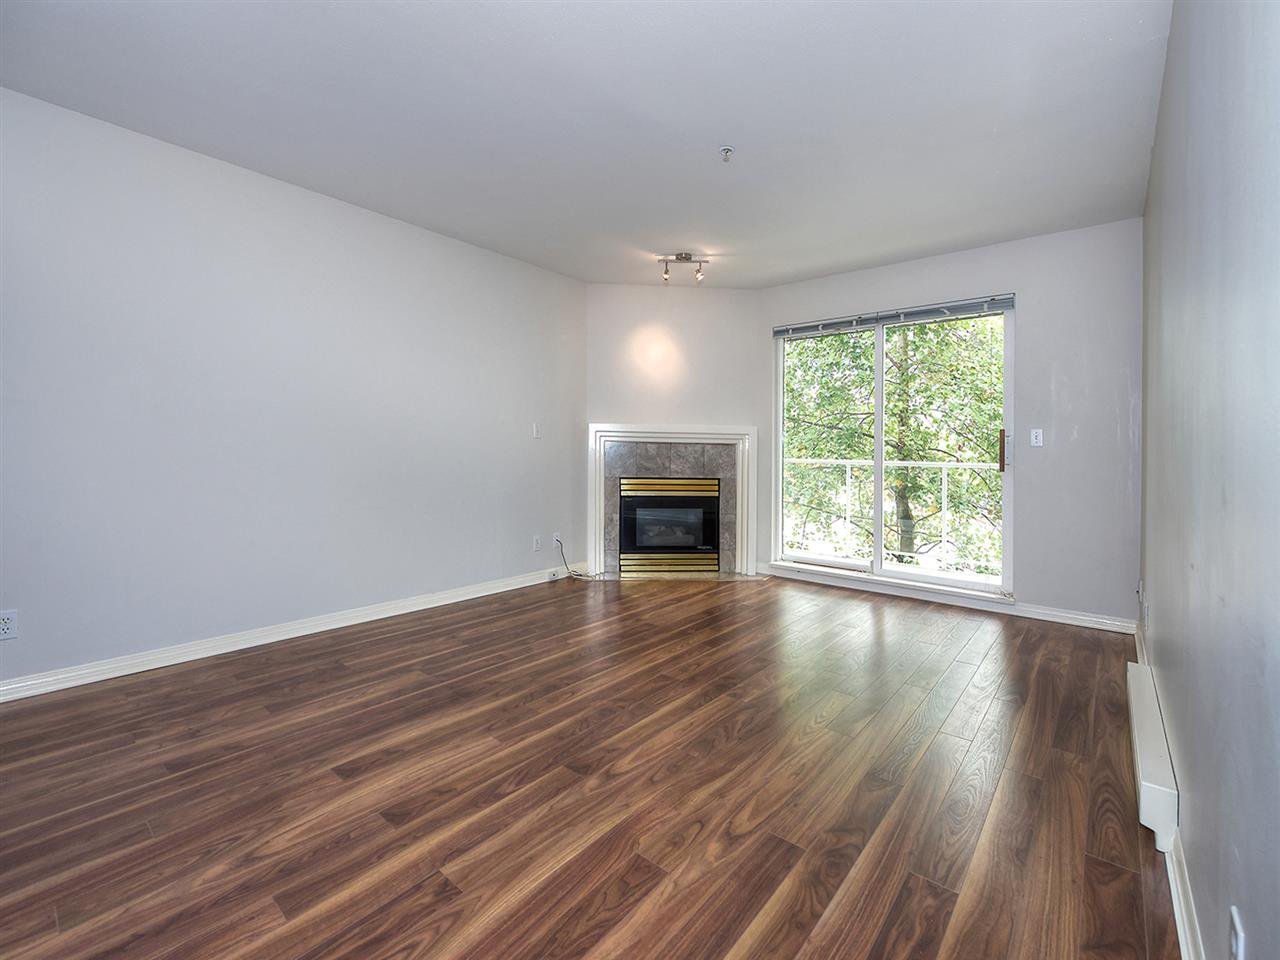 Photo 2: Photos: 203 4768 53 STREET in Delta: Delta Manor Condo for sale (Ladner)  : MLS®# R2202745